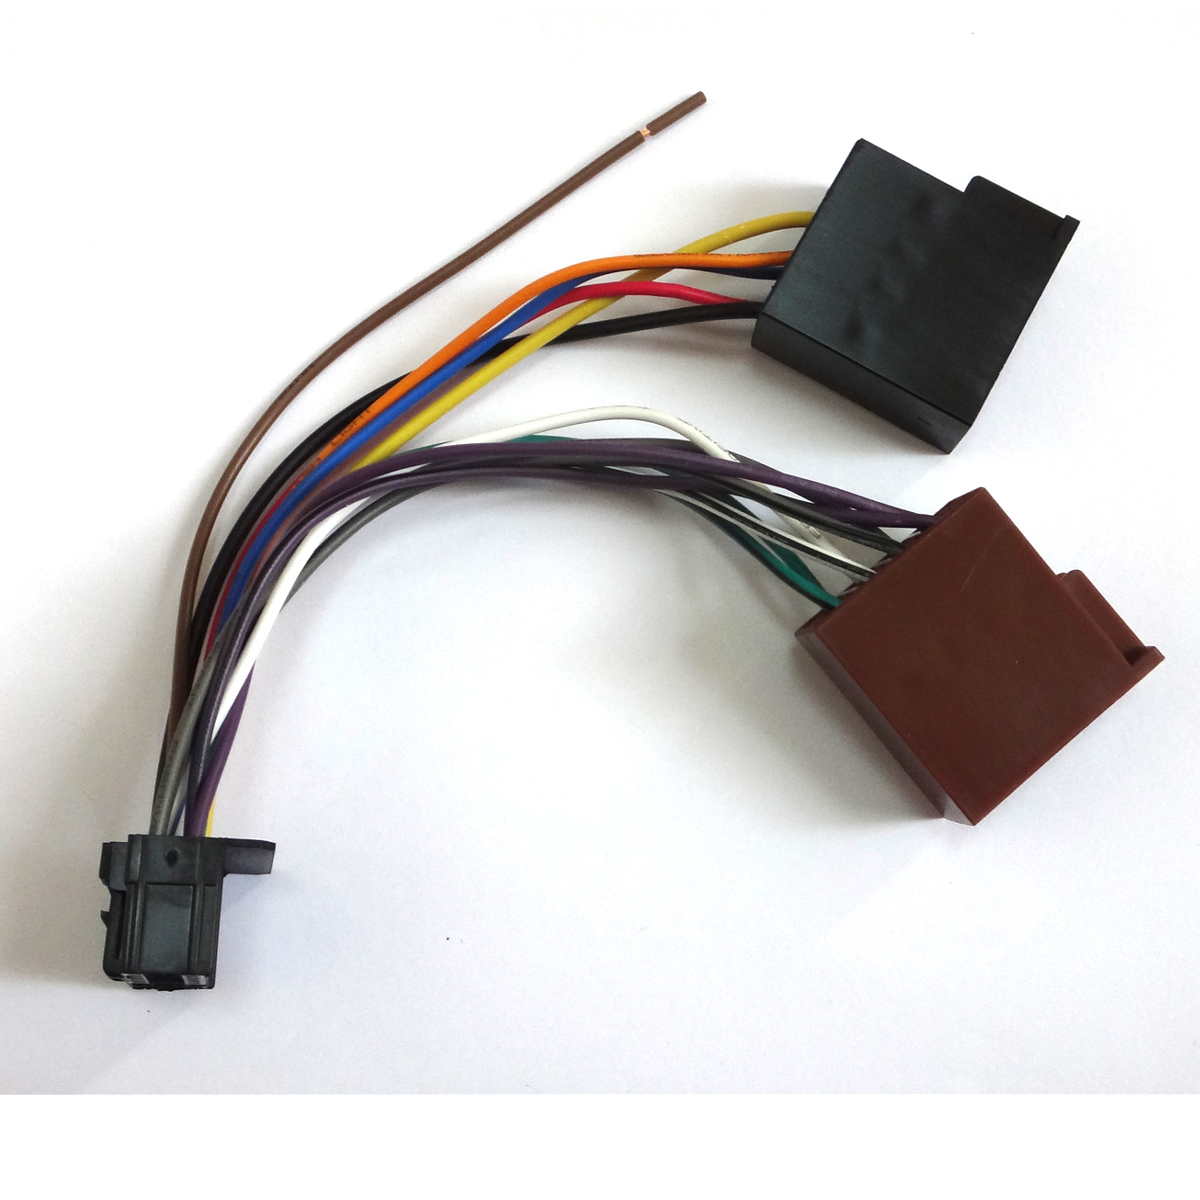 hight resolution of pioneer wire harness car radio p5530mp p5800mp p5900mp p6500mp p6530mp p6700mp in vehicle gps from automobiles motorcycles on aliexpress com alibaba